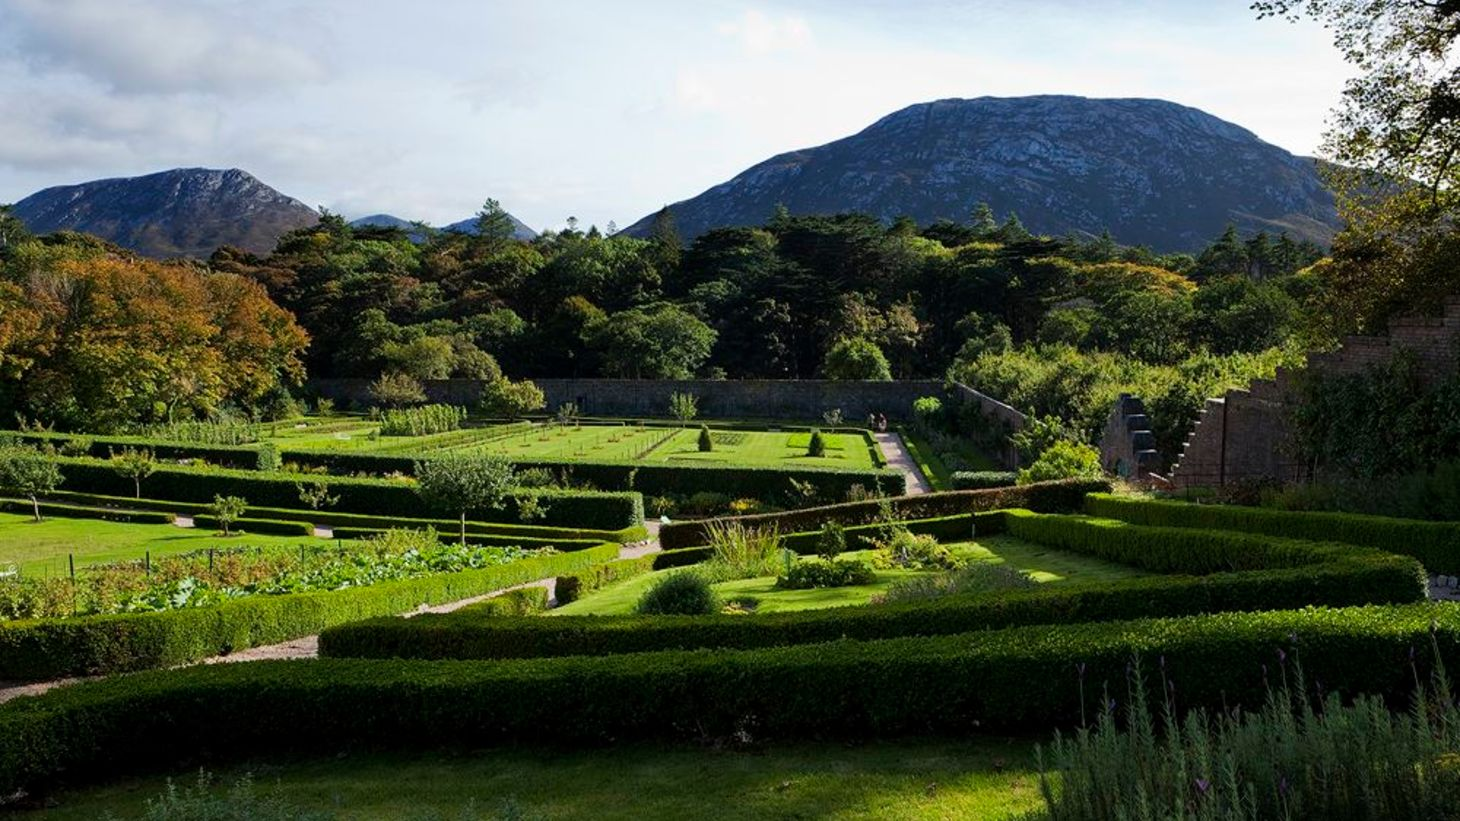 The majestic gardens of Kylemore Abbey in beautiful Connemara.